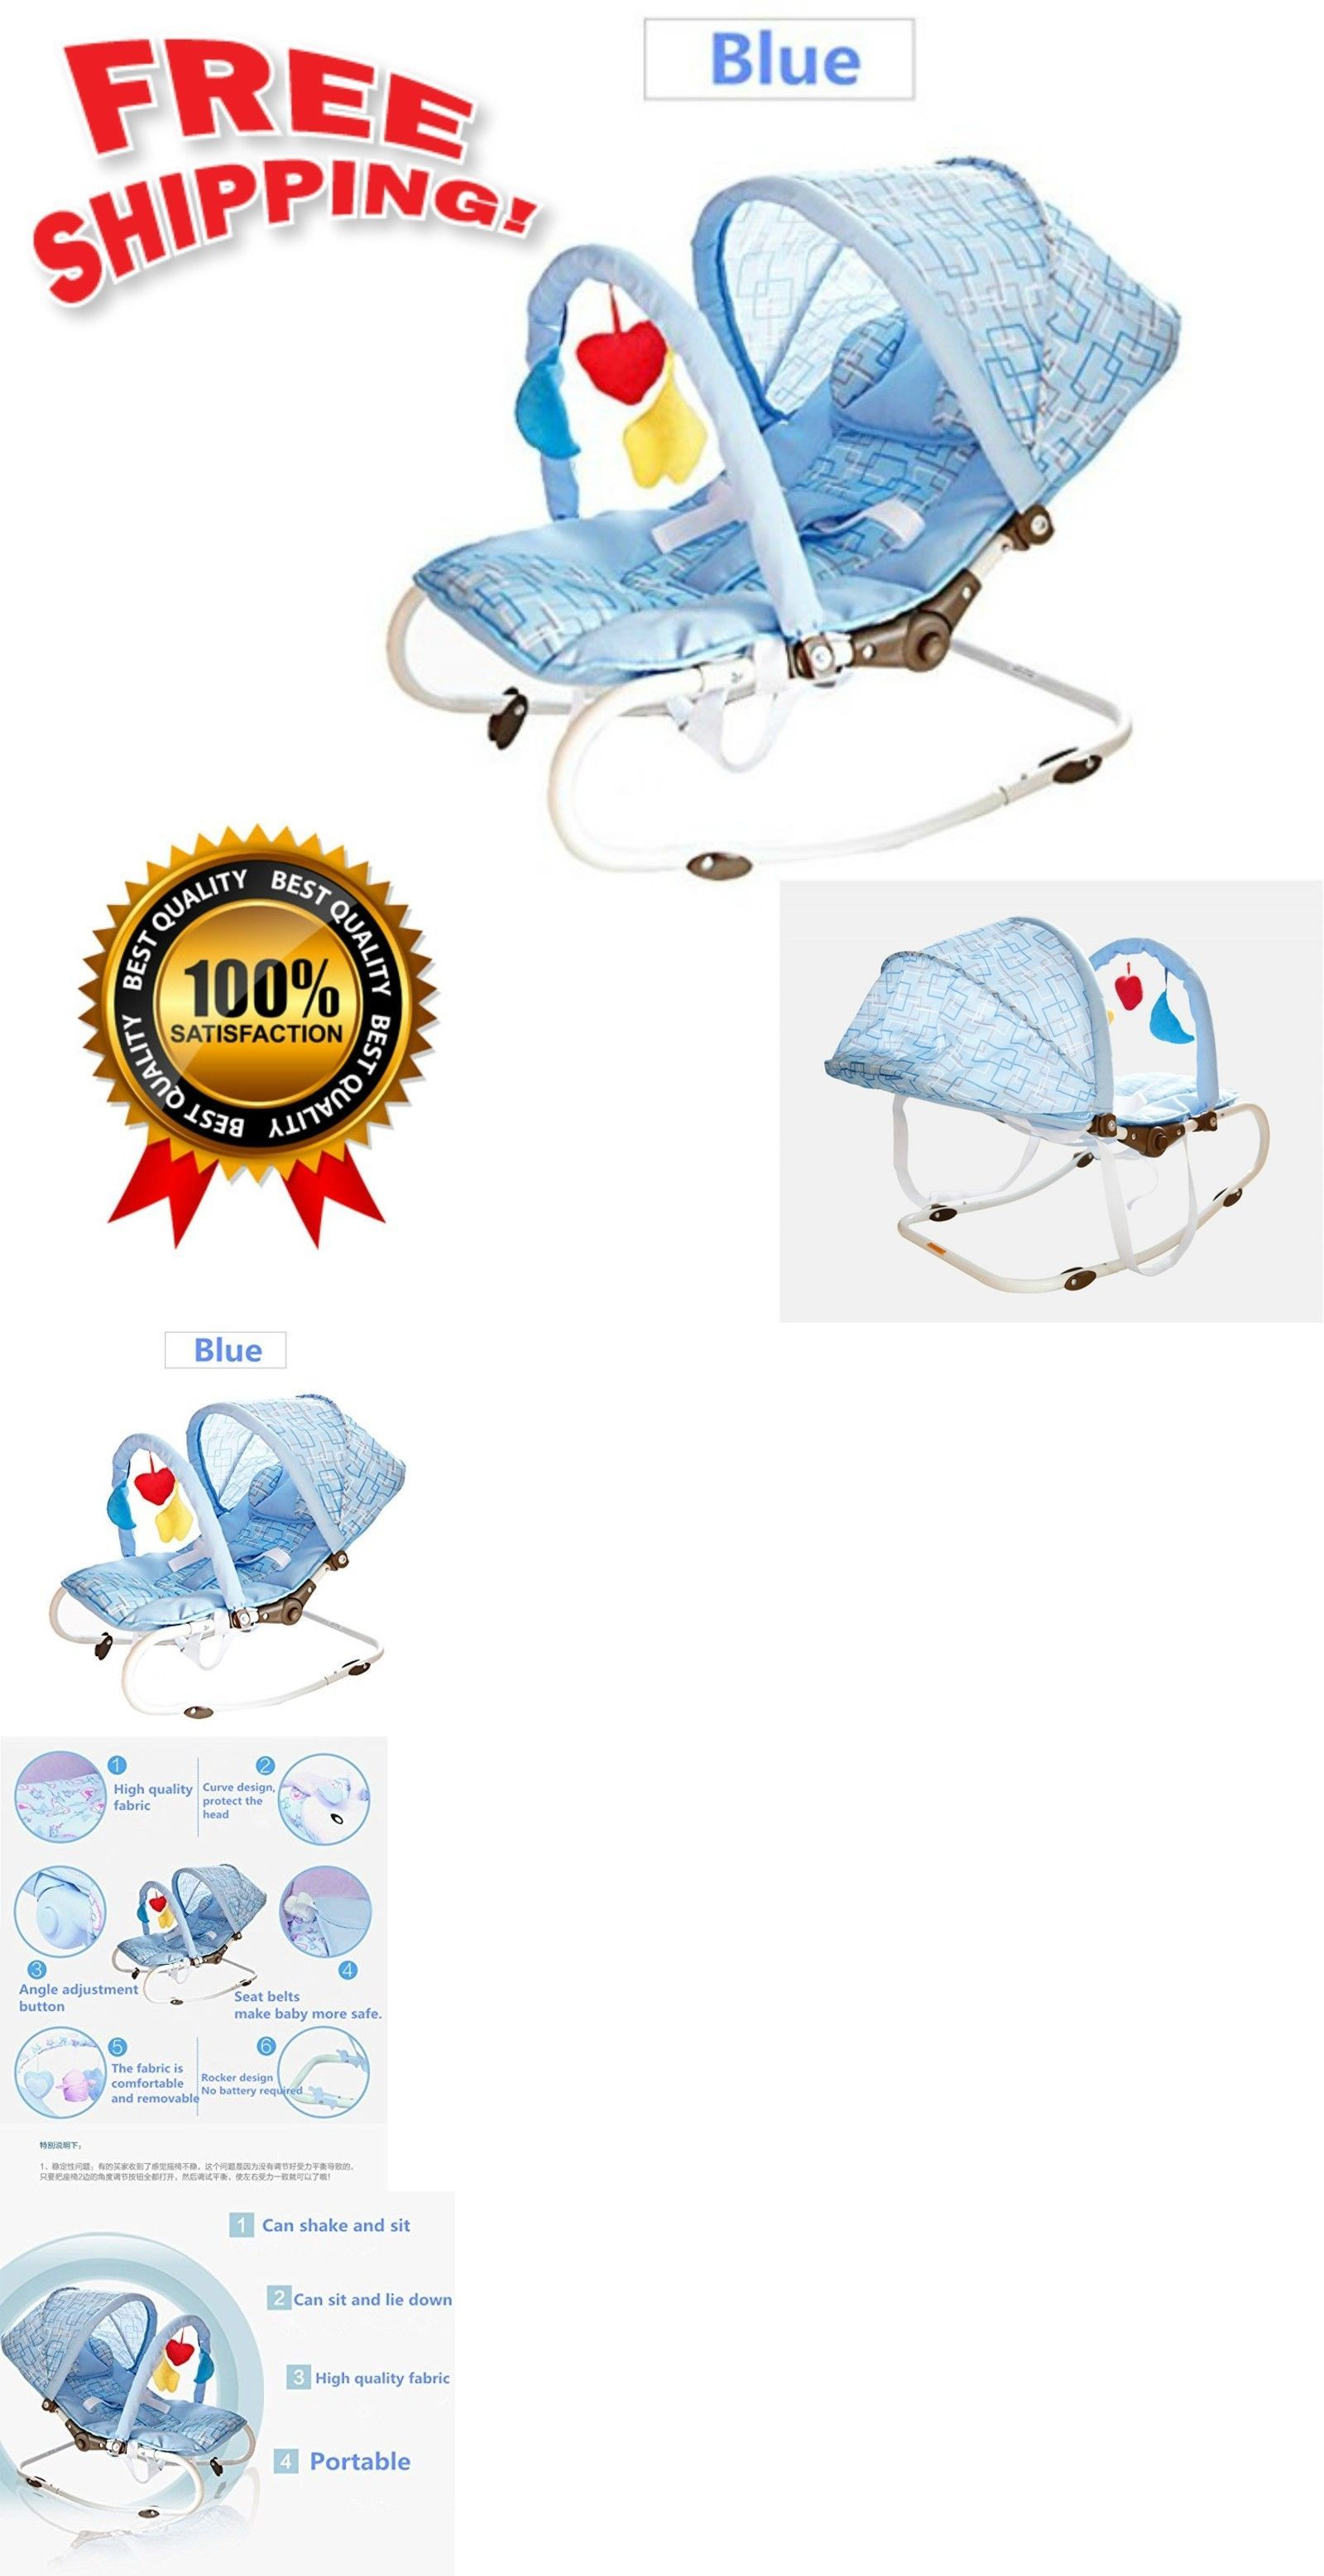 baby sleeper chair small bedroom chairs gear 100223 newborn to toddler portable rocker seat infant swing toy blue buy it now only 106 63 on ebay